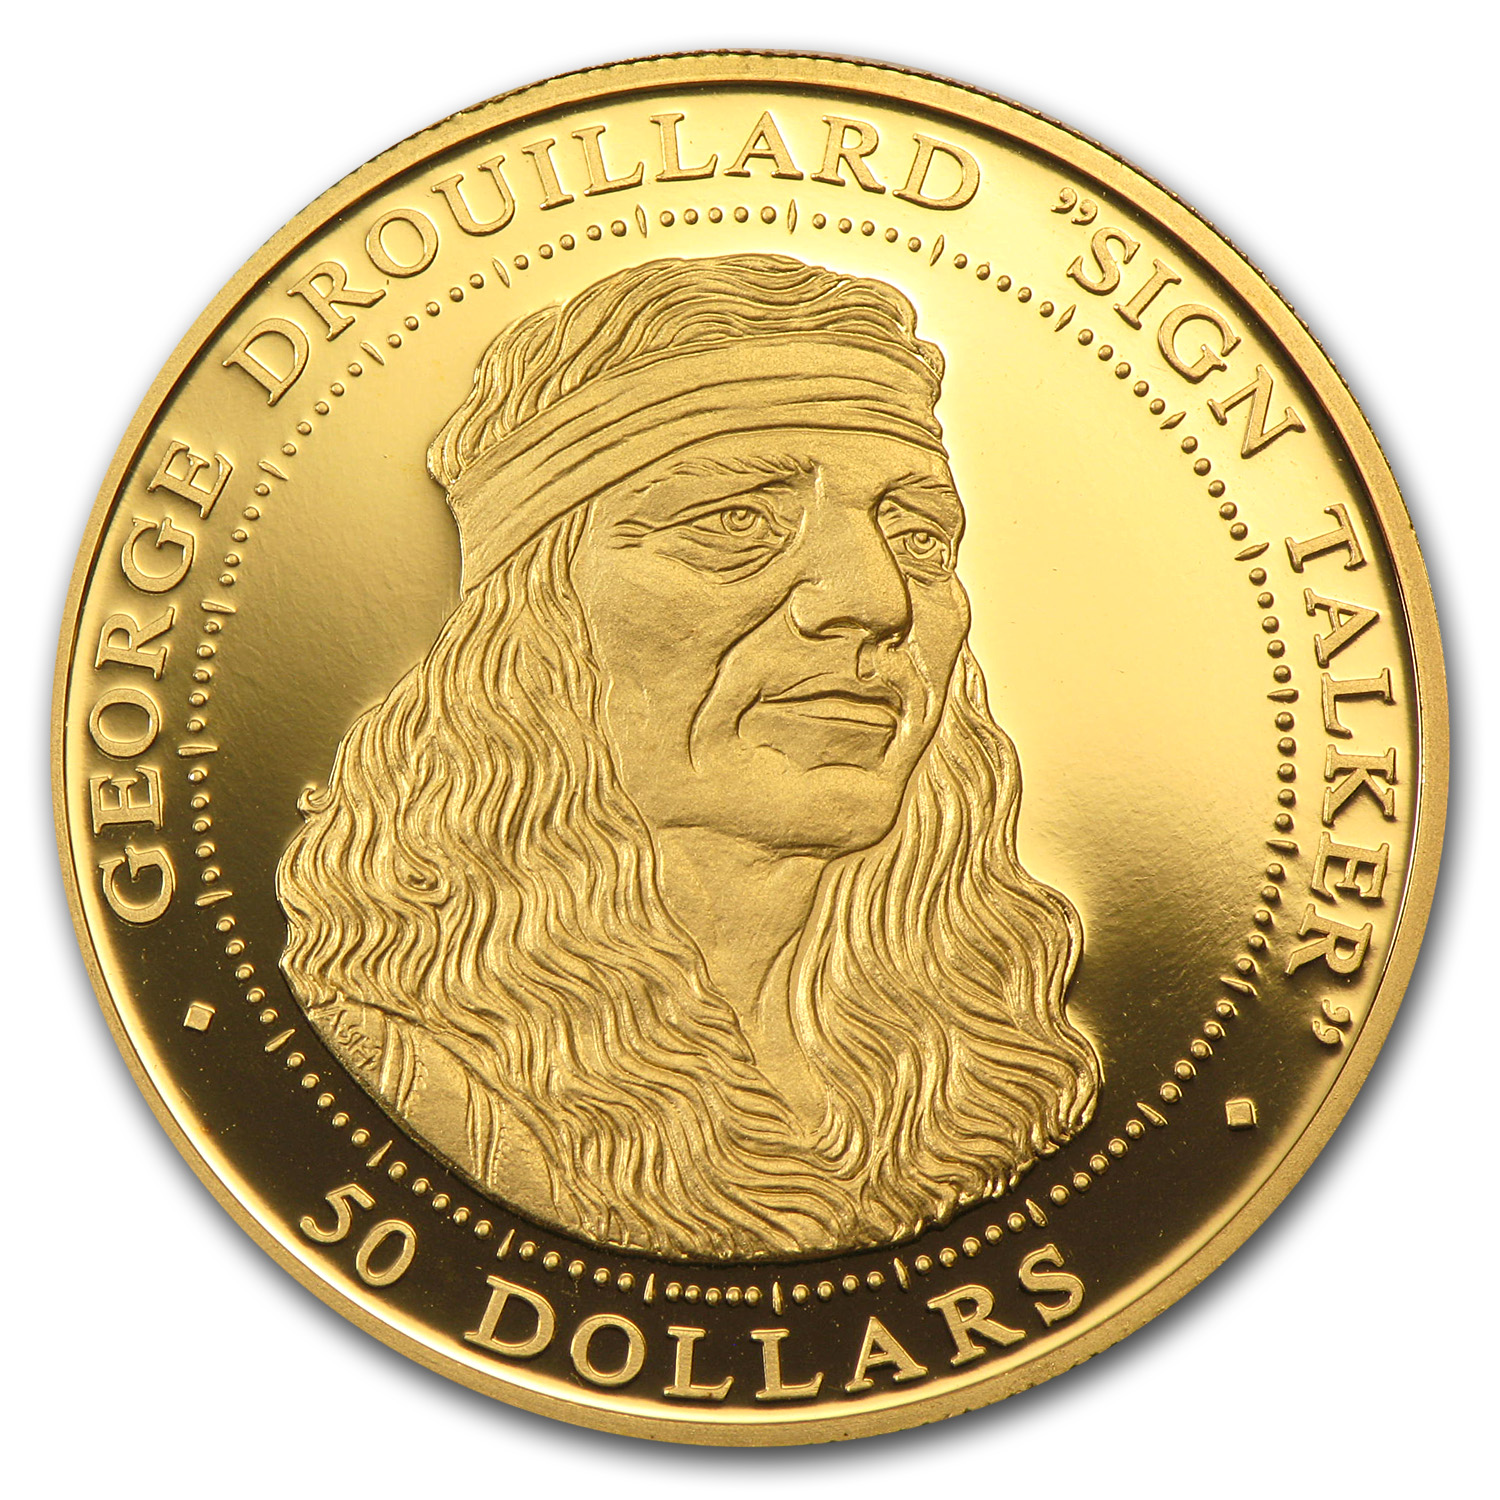 1/2 oz Gold Rounds - $50 Shawnee Indian Drouillard